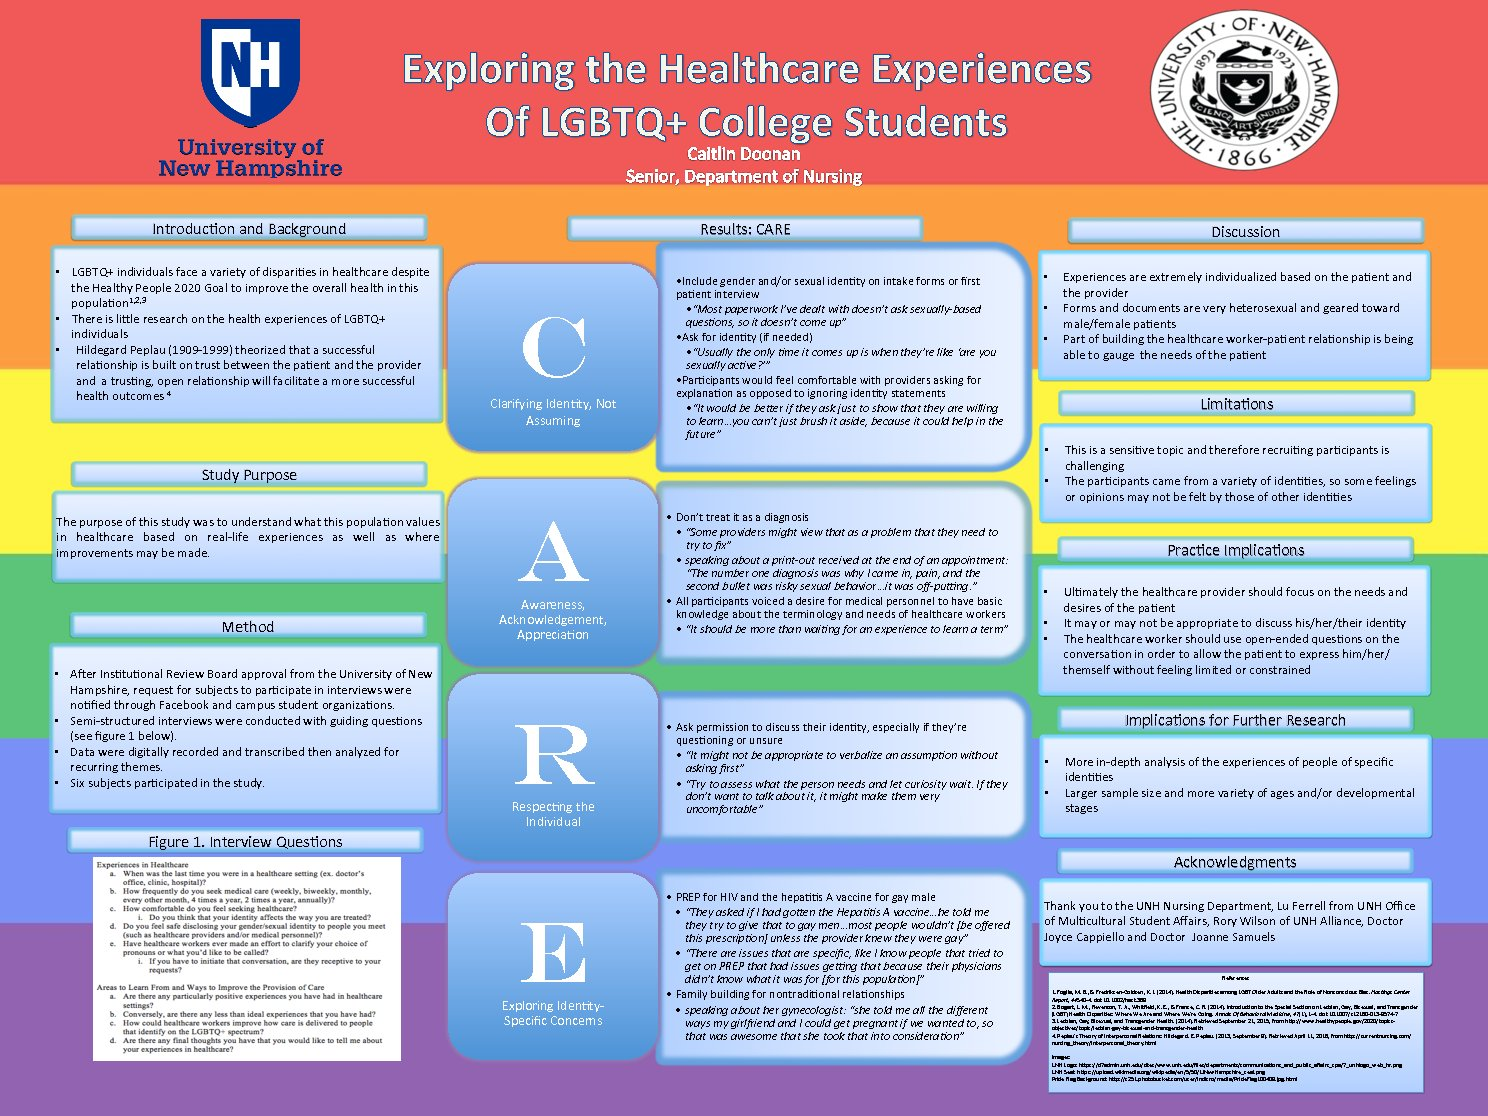 Exploring The Healthcare Experiences Of Lgbtq+ College Students by cmo258